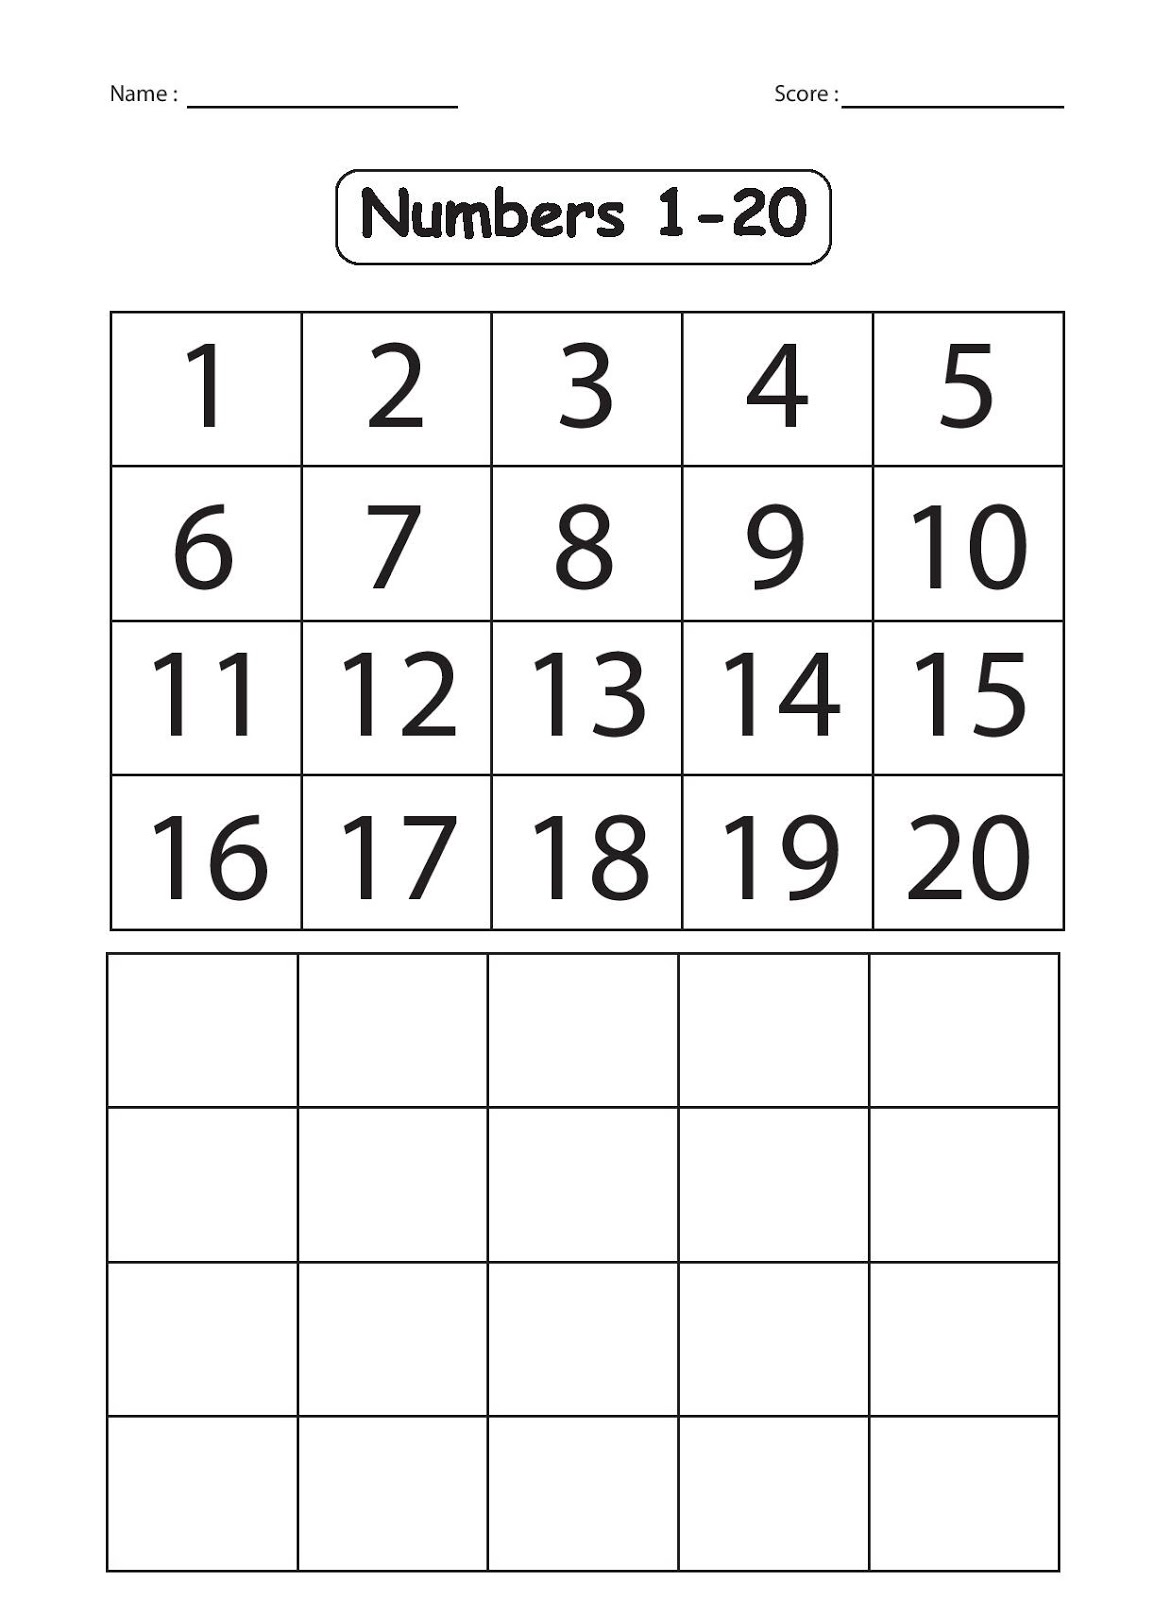 Worksheet Numbers Math Worksheets Writing In Words Counting And 1